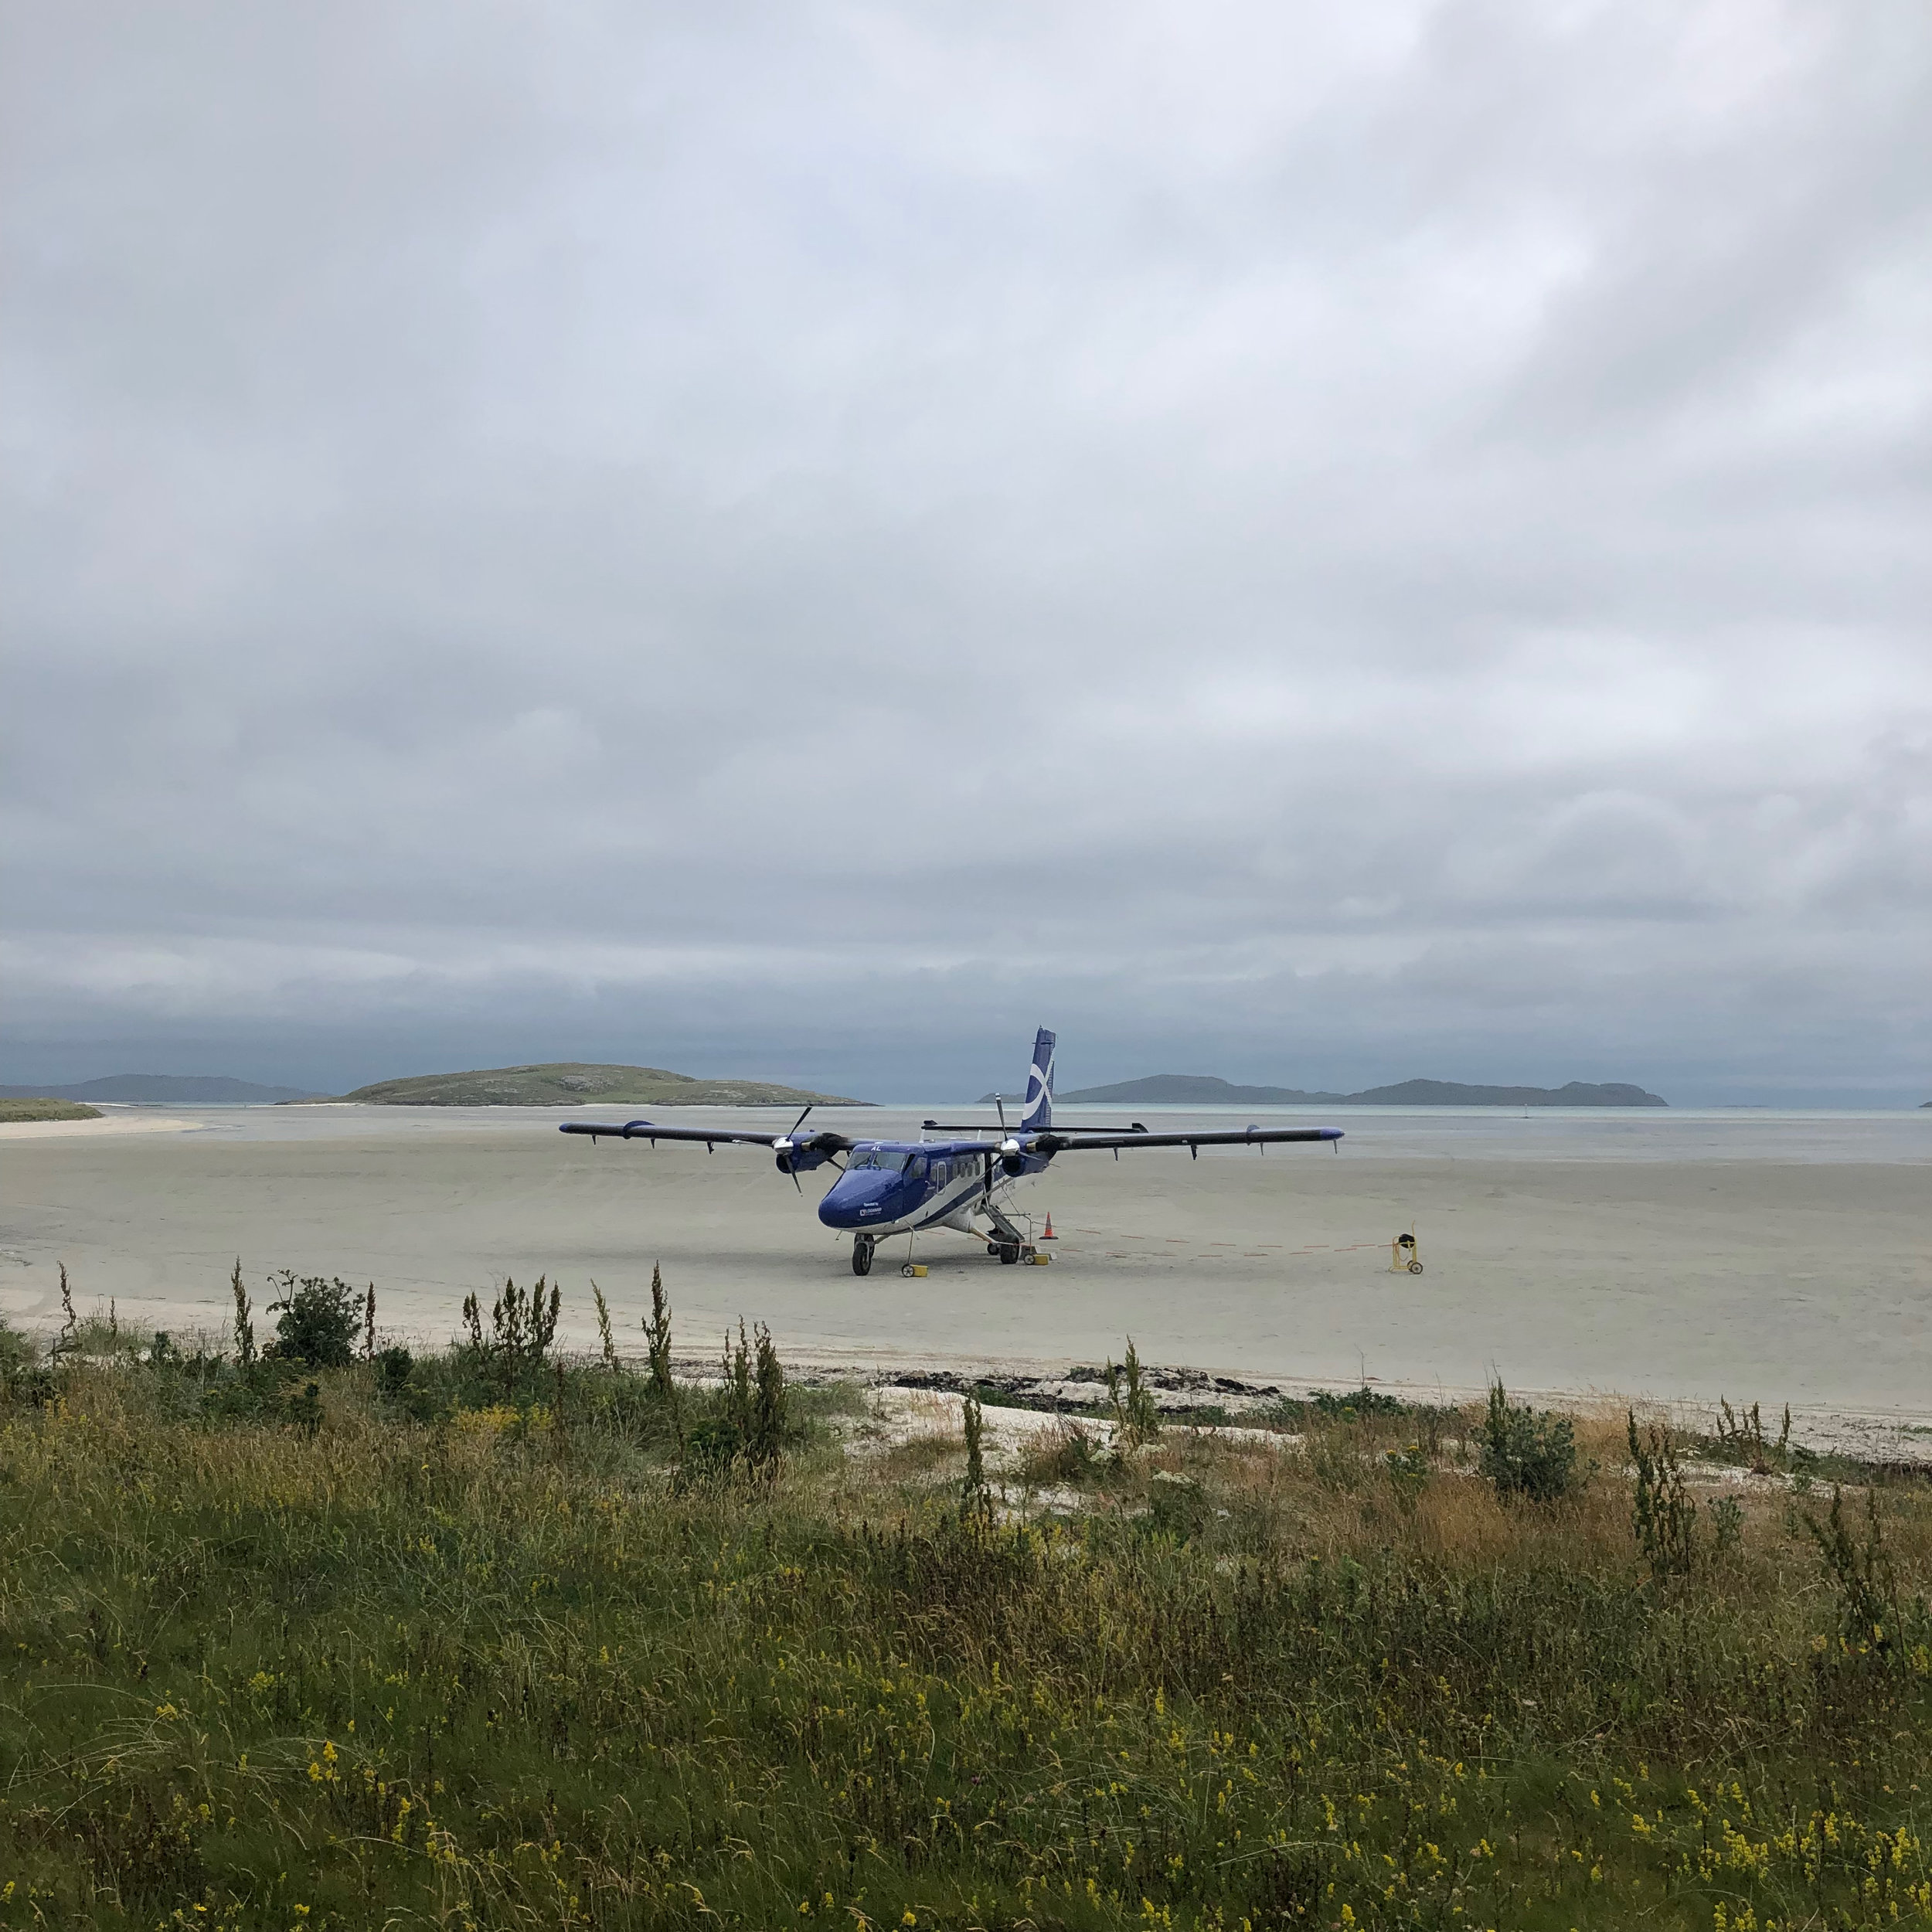 The twin engine Otter that lands on the beach in Barra.